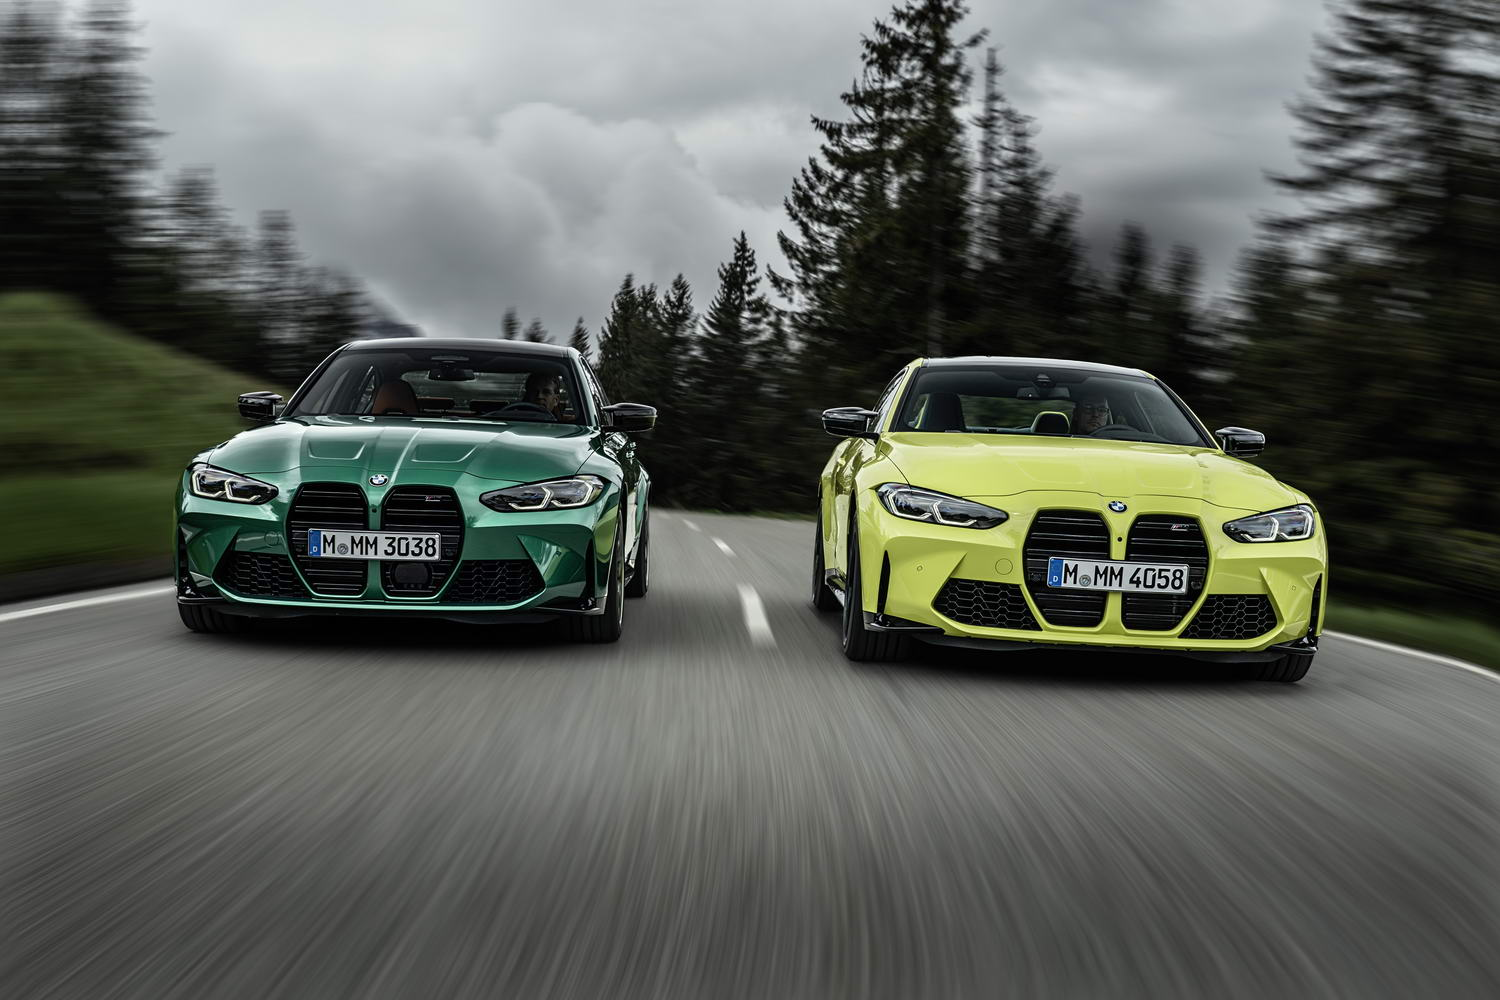 Car News | All-new 2021 BMW M3 and M4 get 510hp | CompleteCar.ie